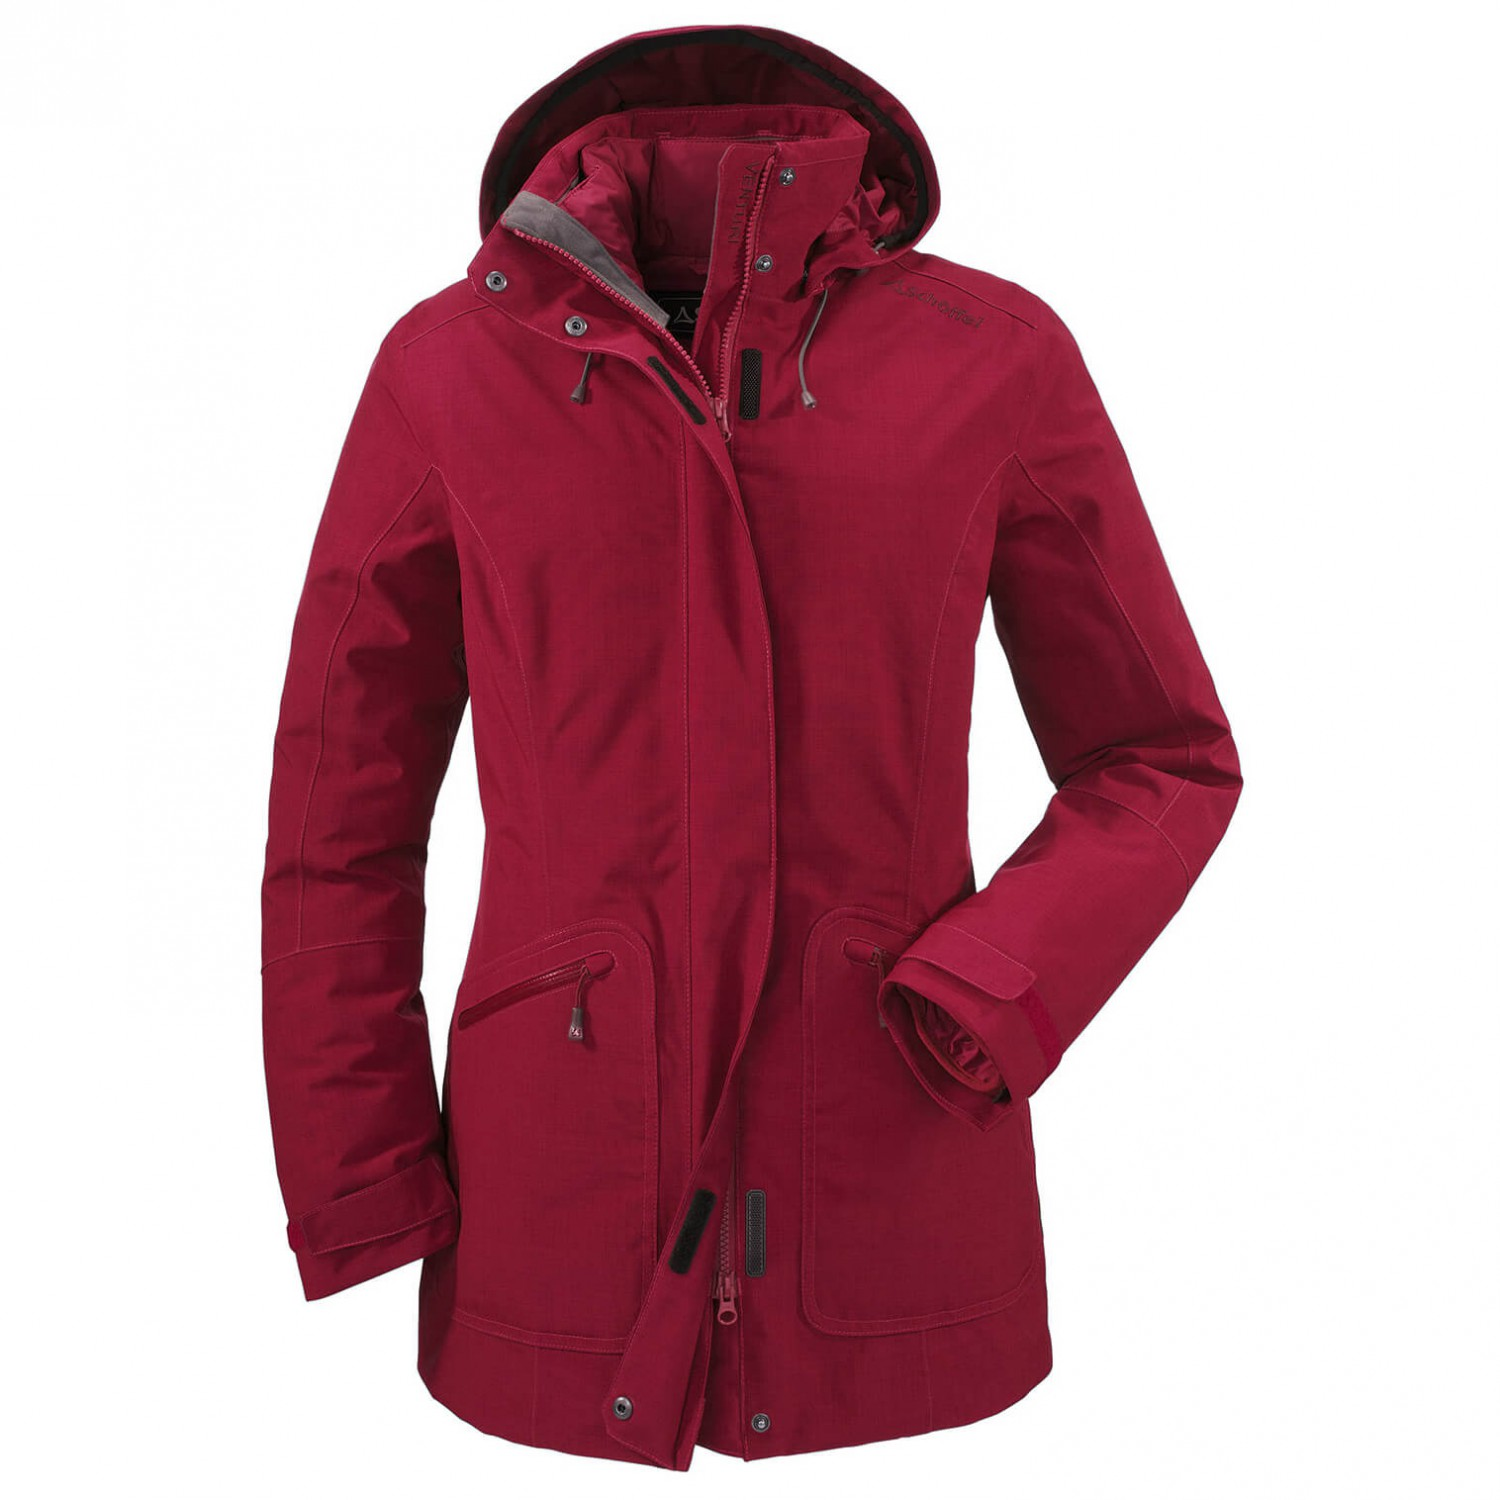 Schoffel jacken 2 in 1